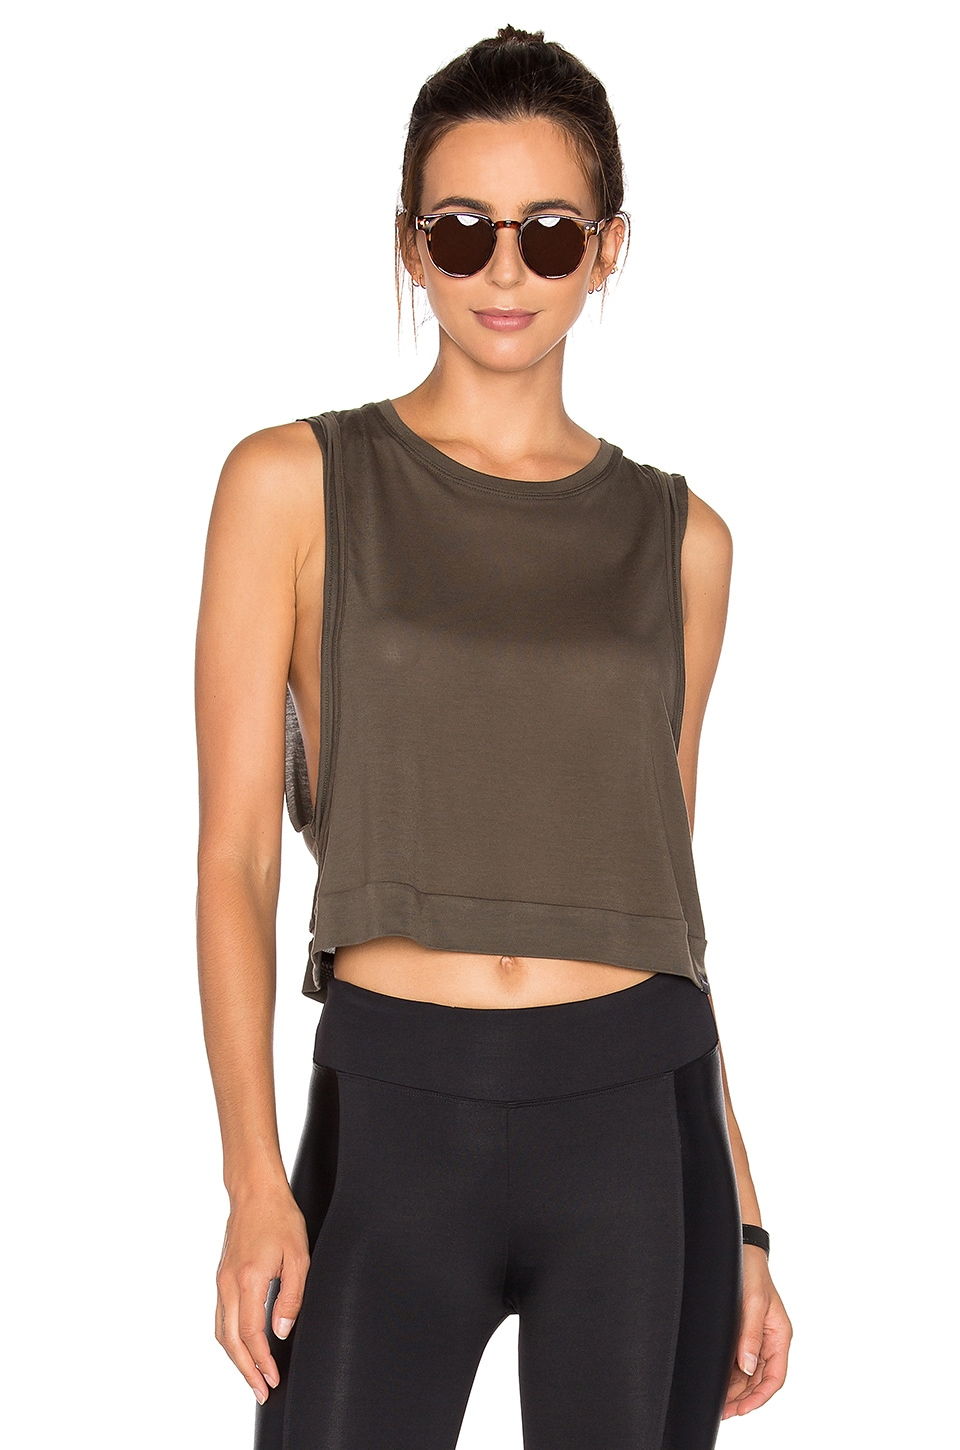 KORAL Cut Crop Tank in Military Green